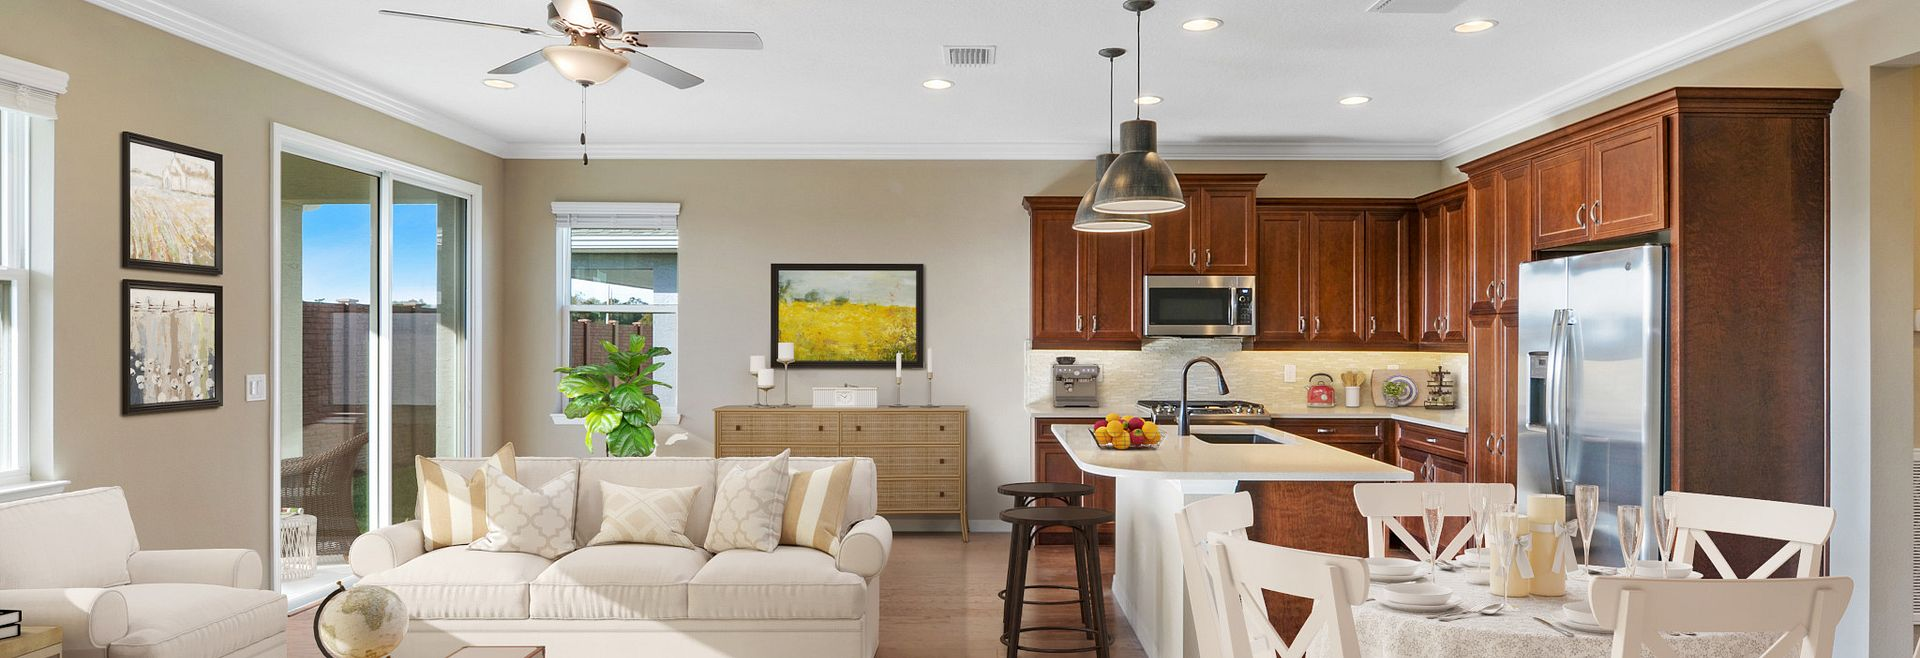 Trilogy at Ocala Preserve Aria Quick Move In Home Virtually Staged Great Room